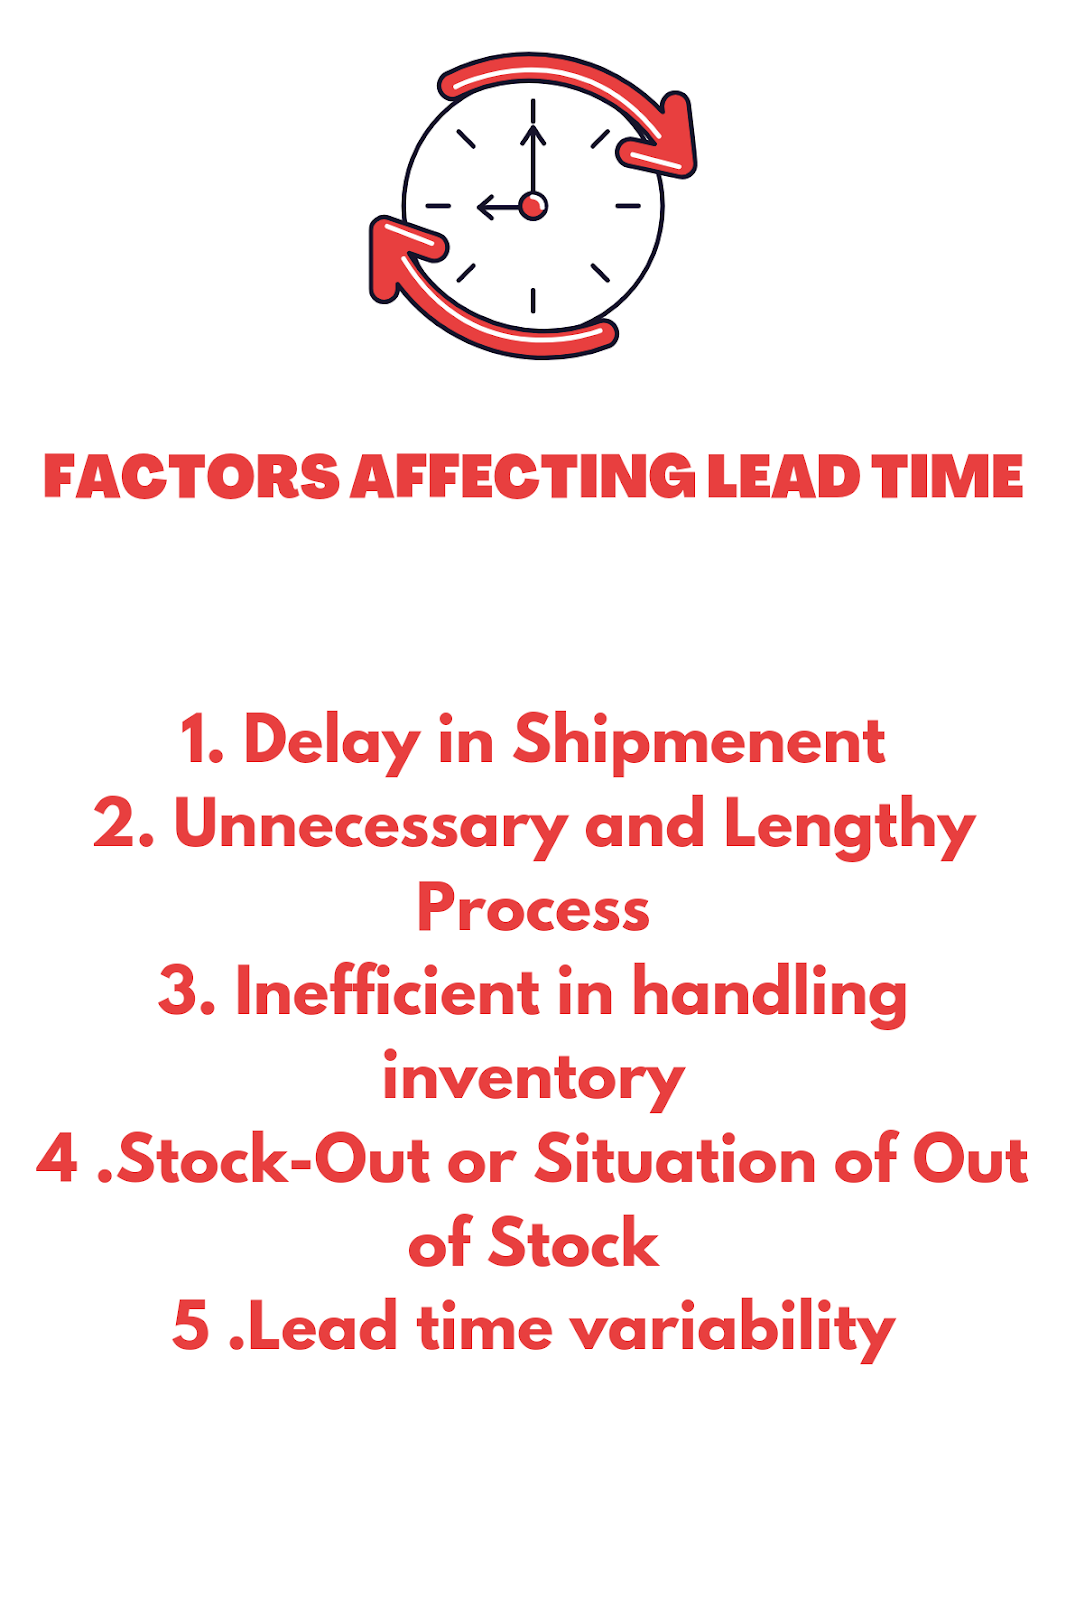 Factors of lead Time